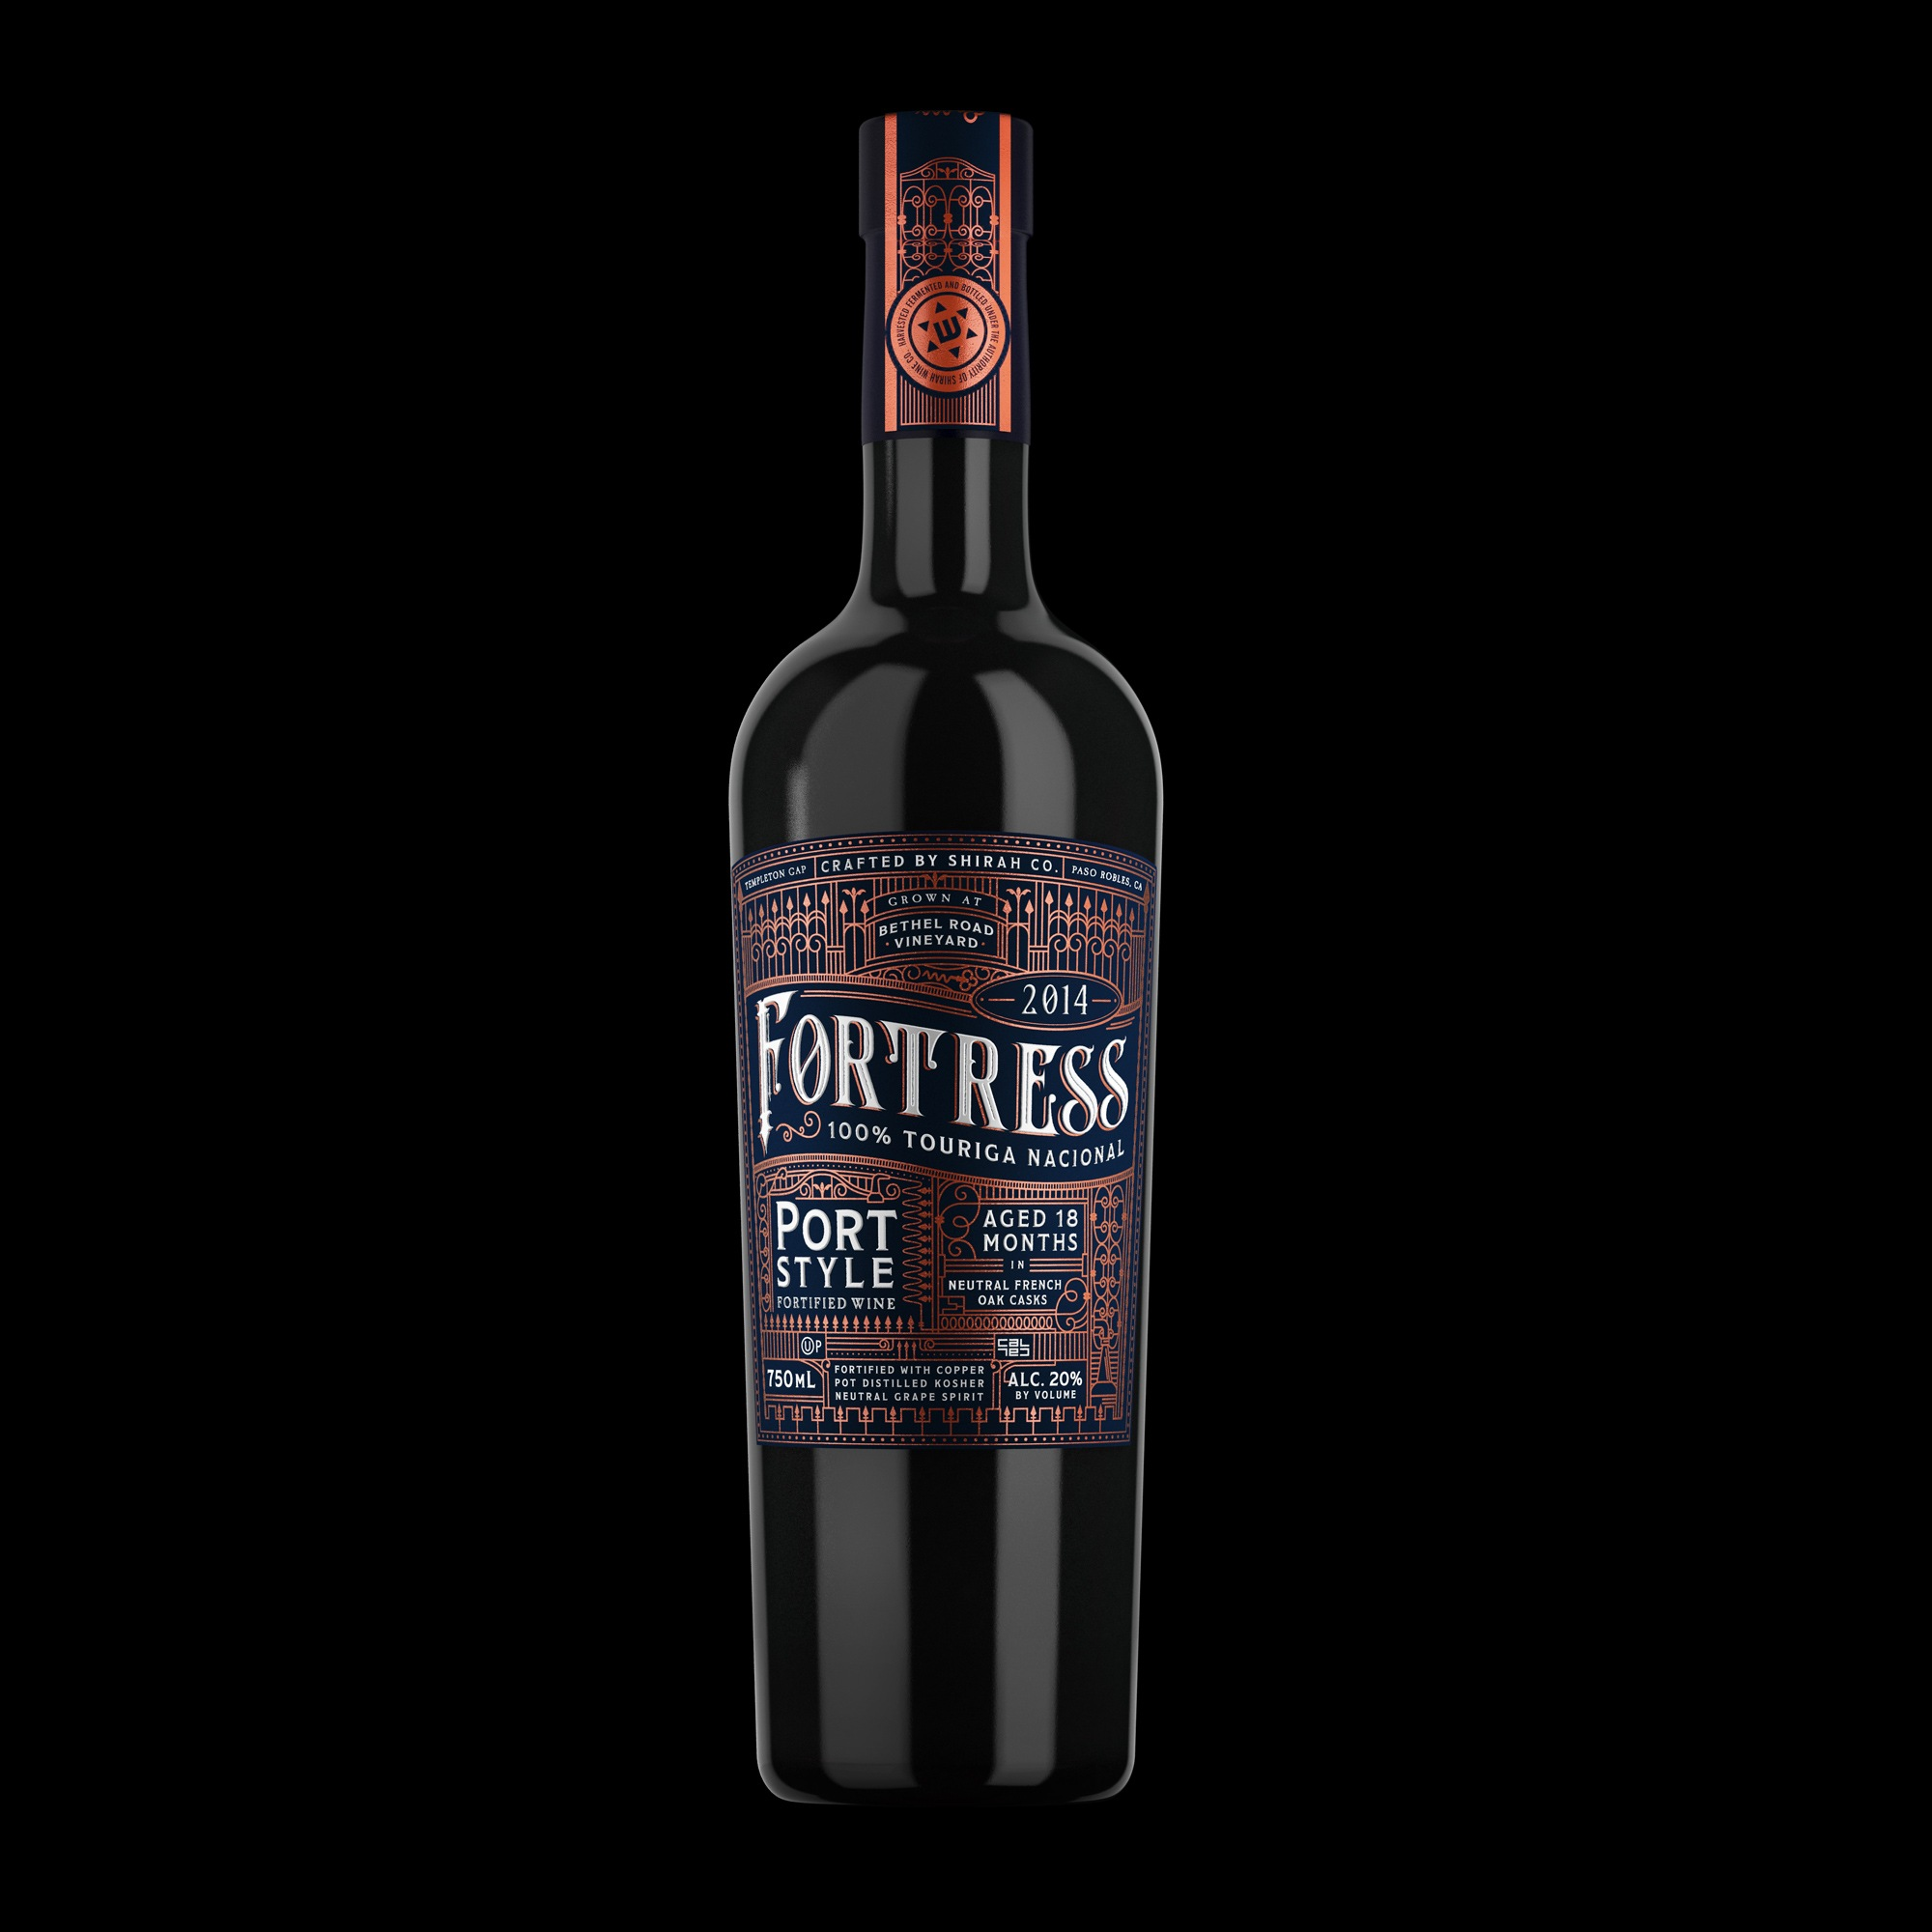 Fortress Port Wine Label Bottle